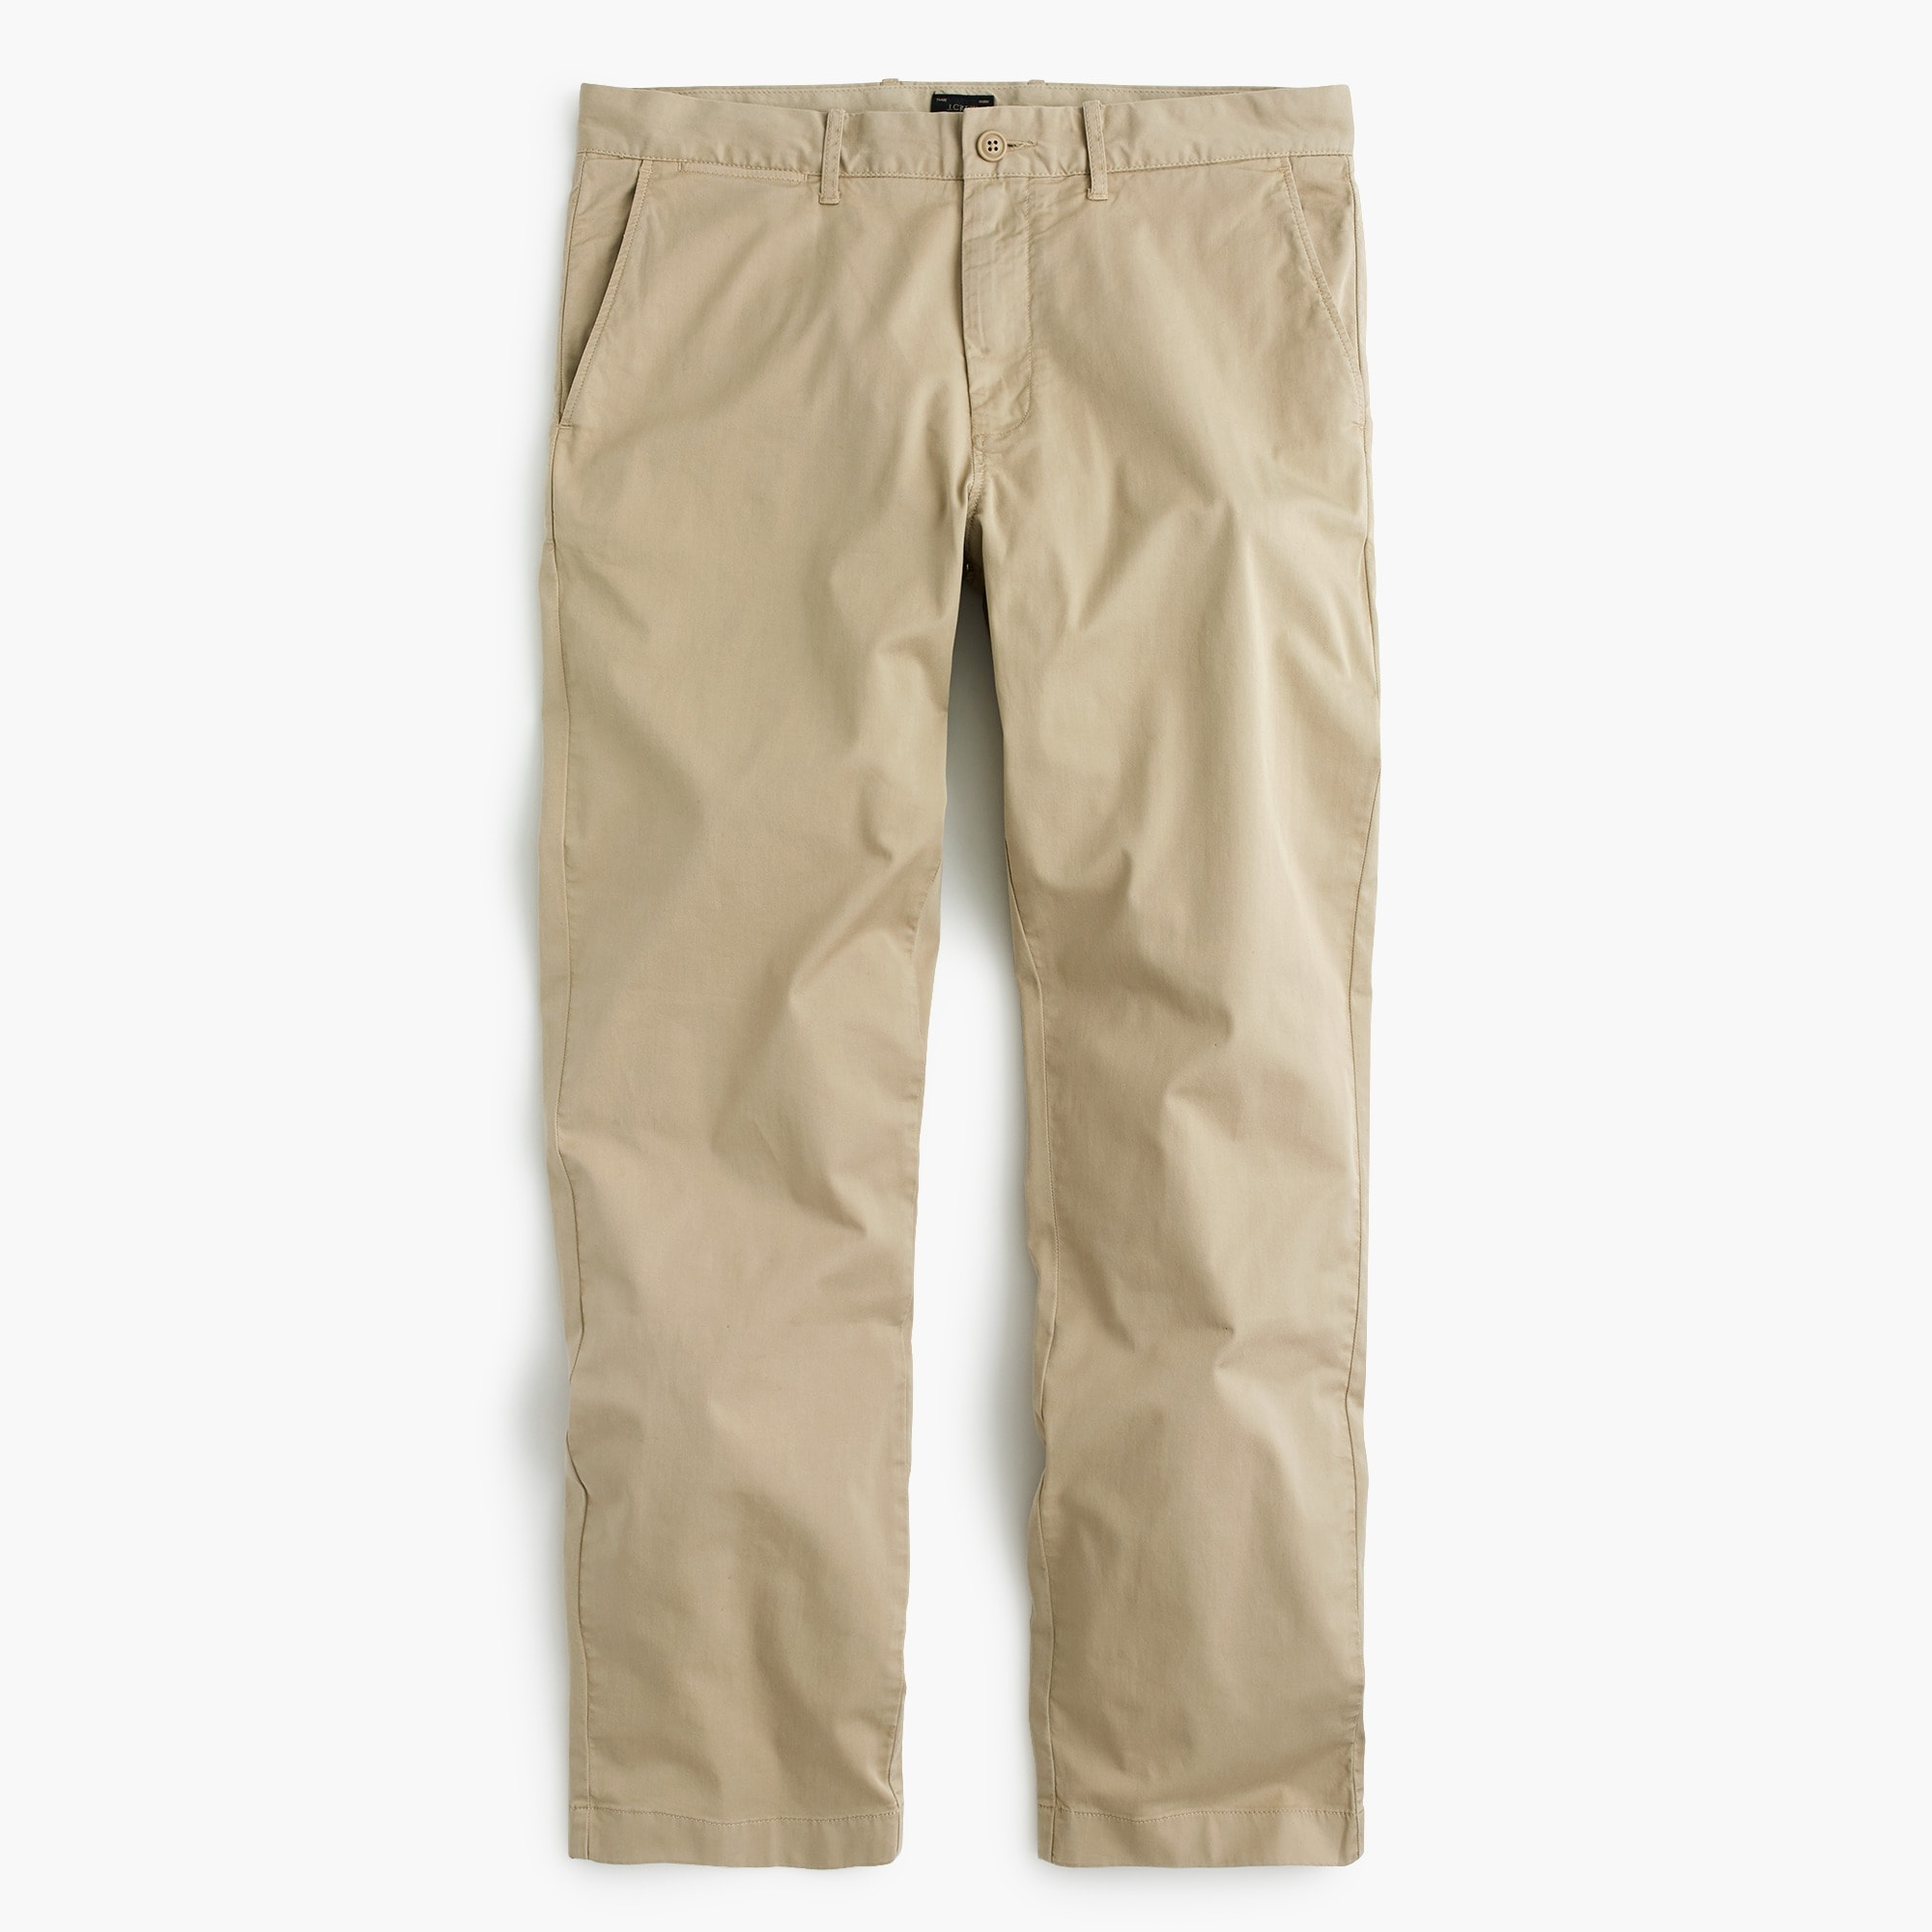 Image 1 for 1040 Athletic-fit lightweight garment-dyed stretch chino